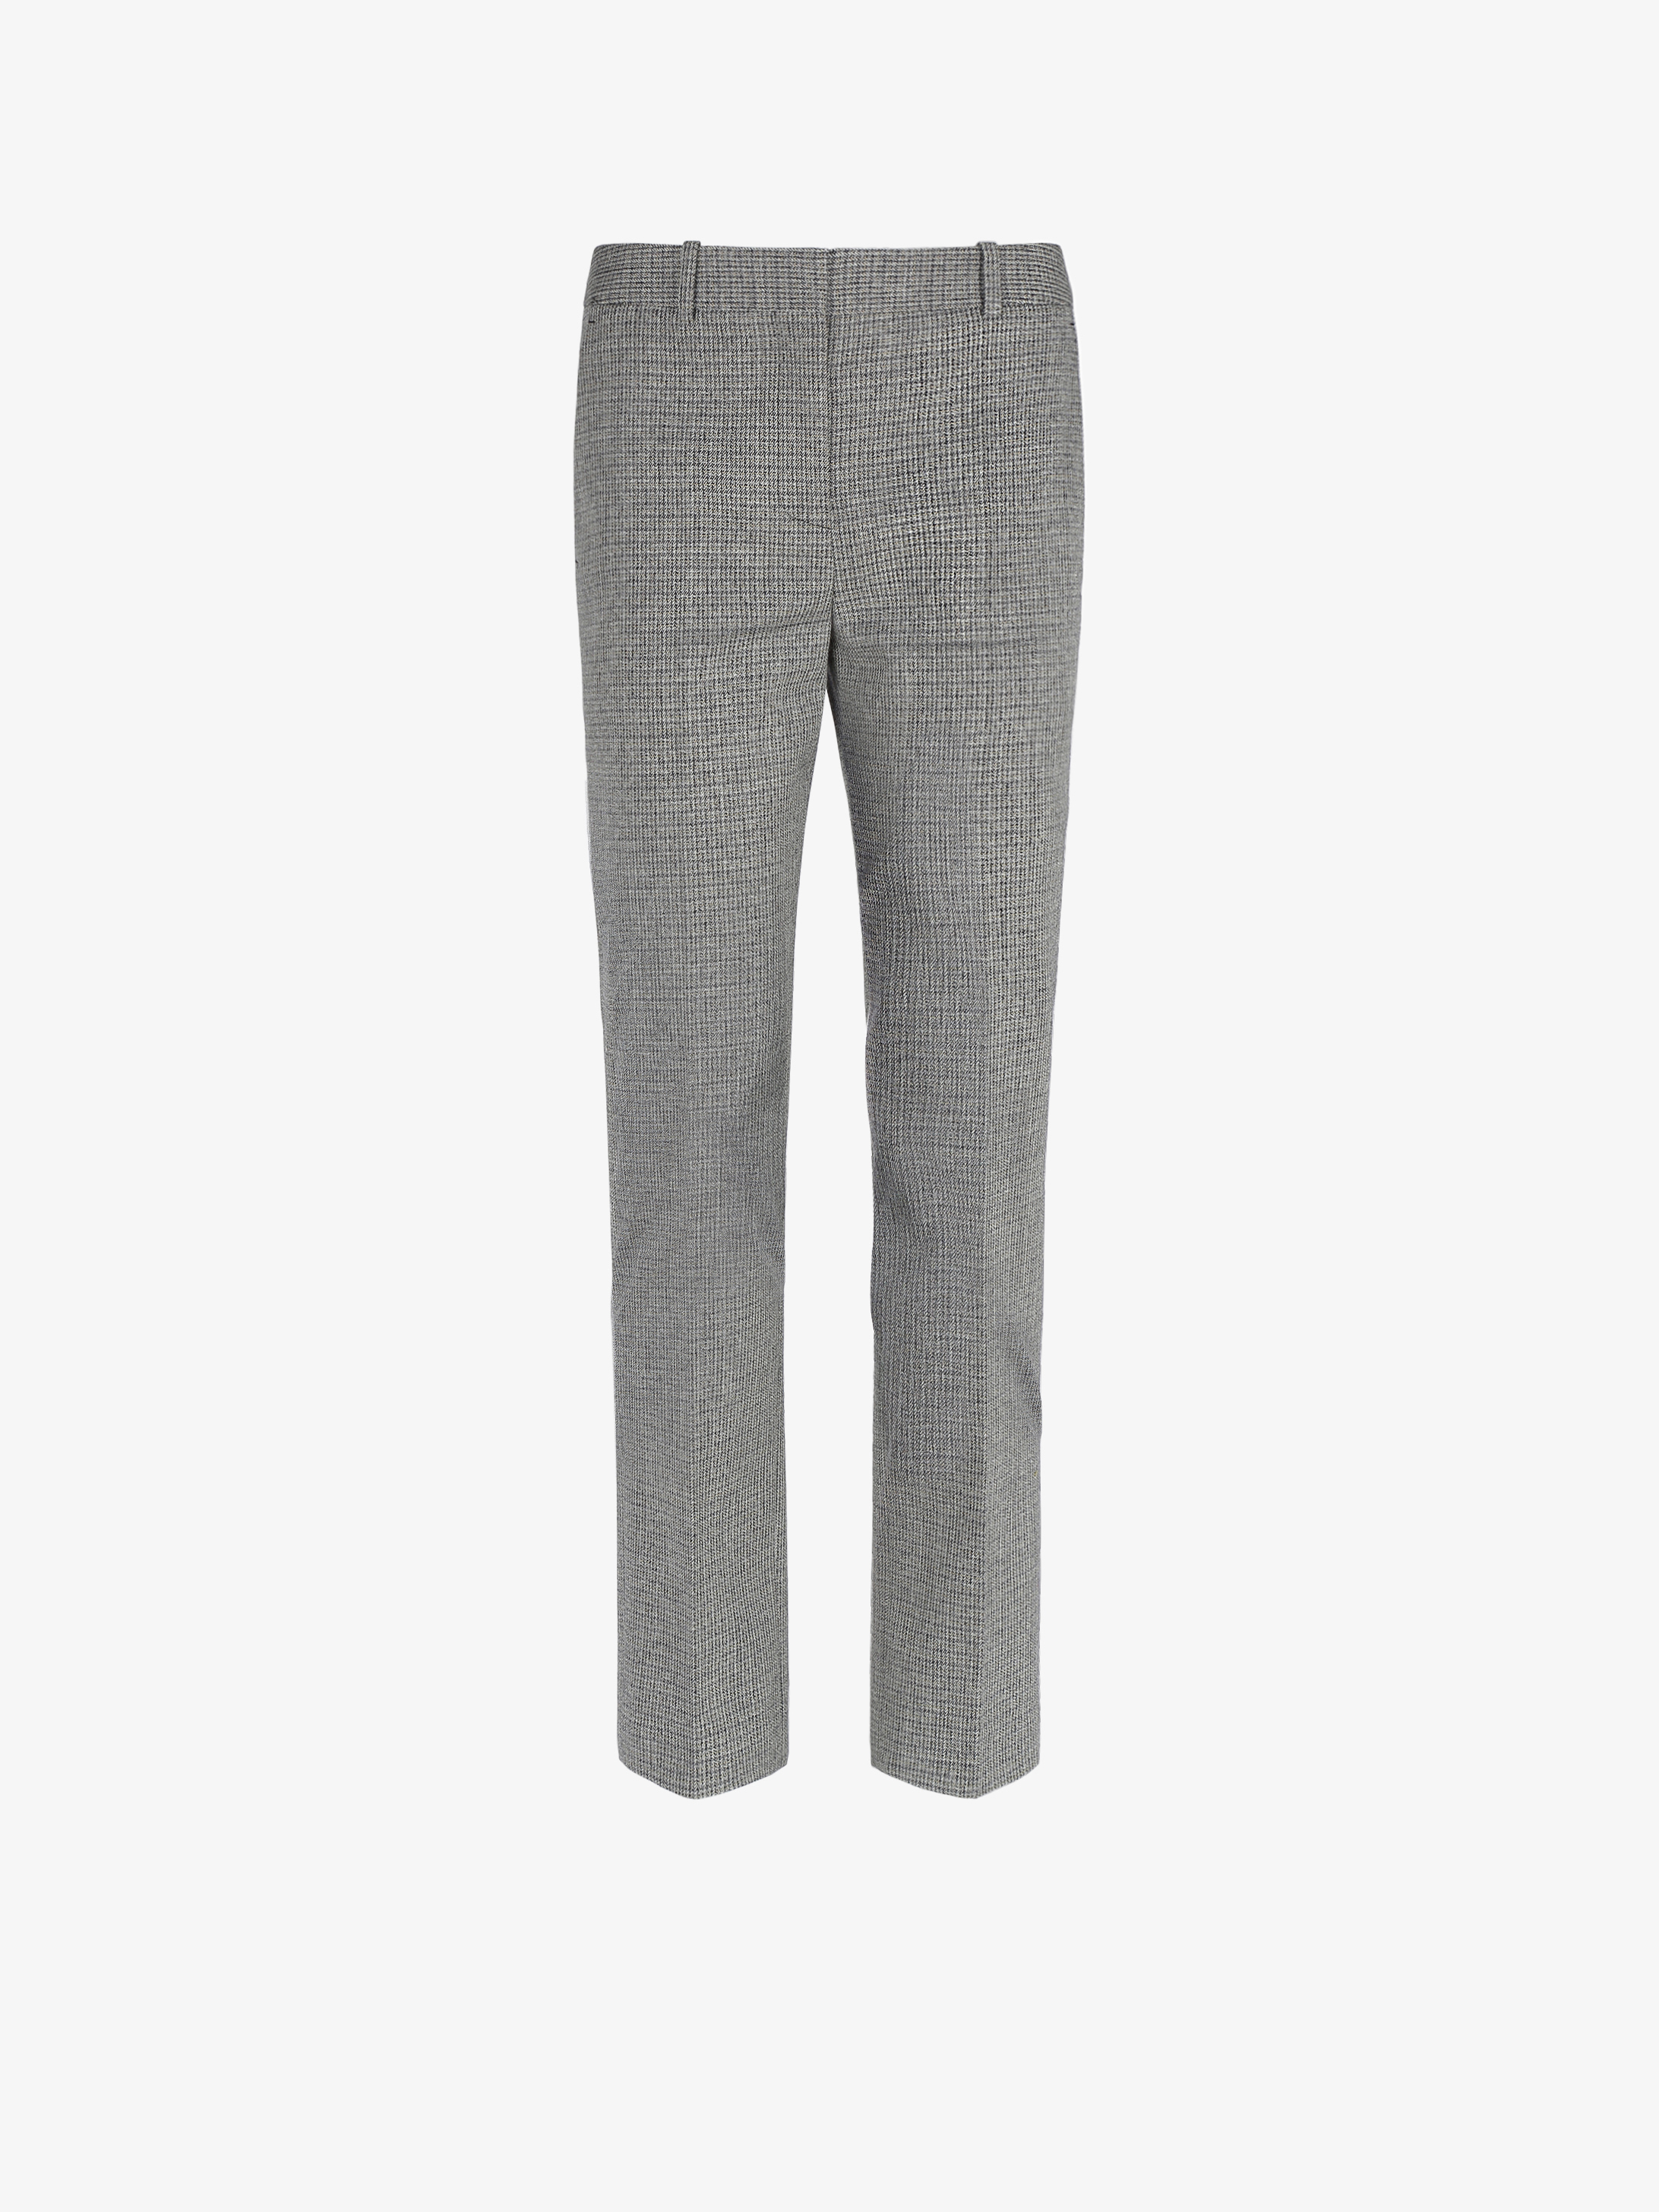 Cigarette trousers in checked tweed